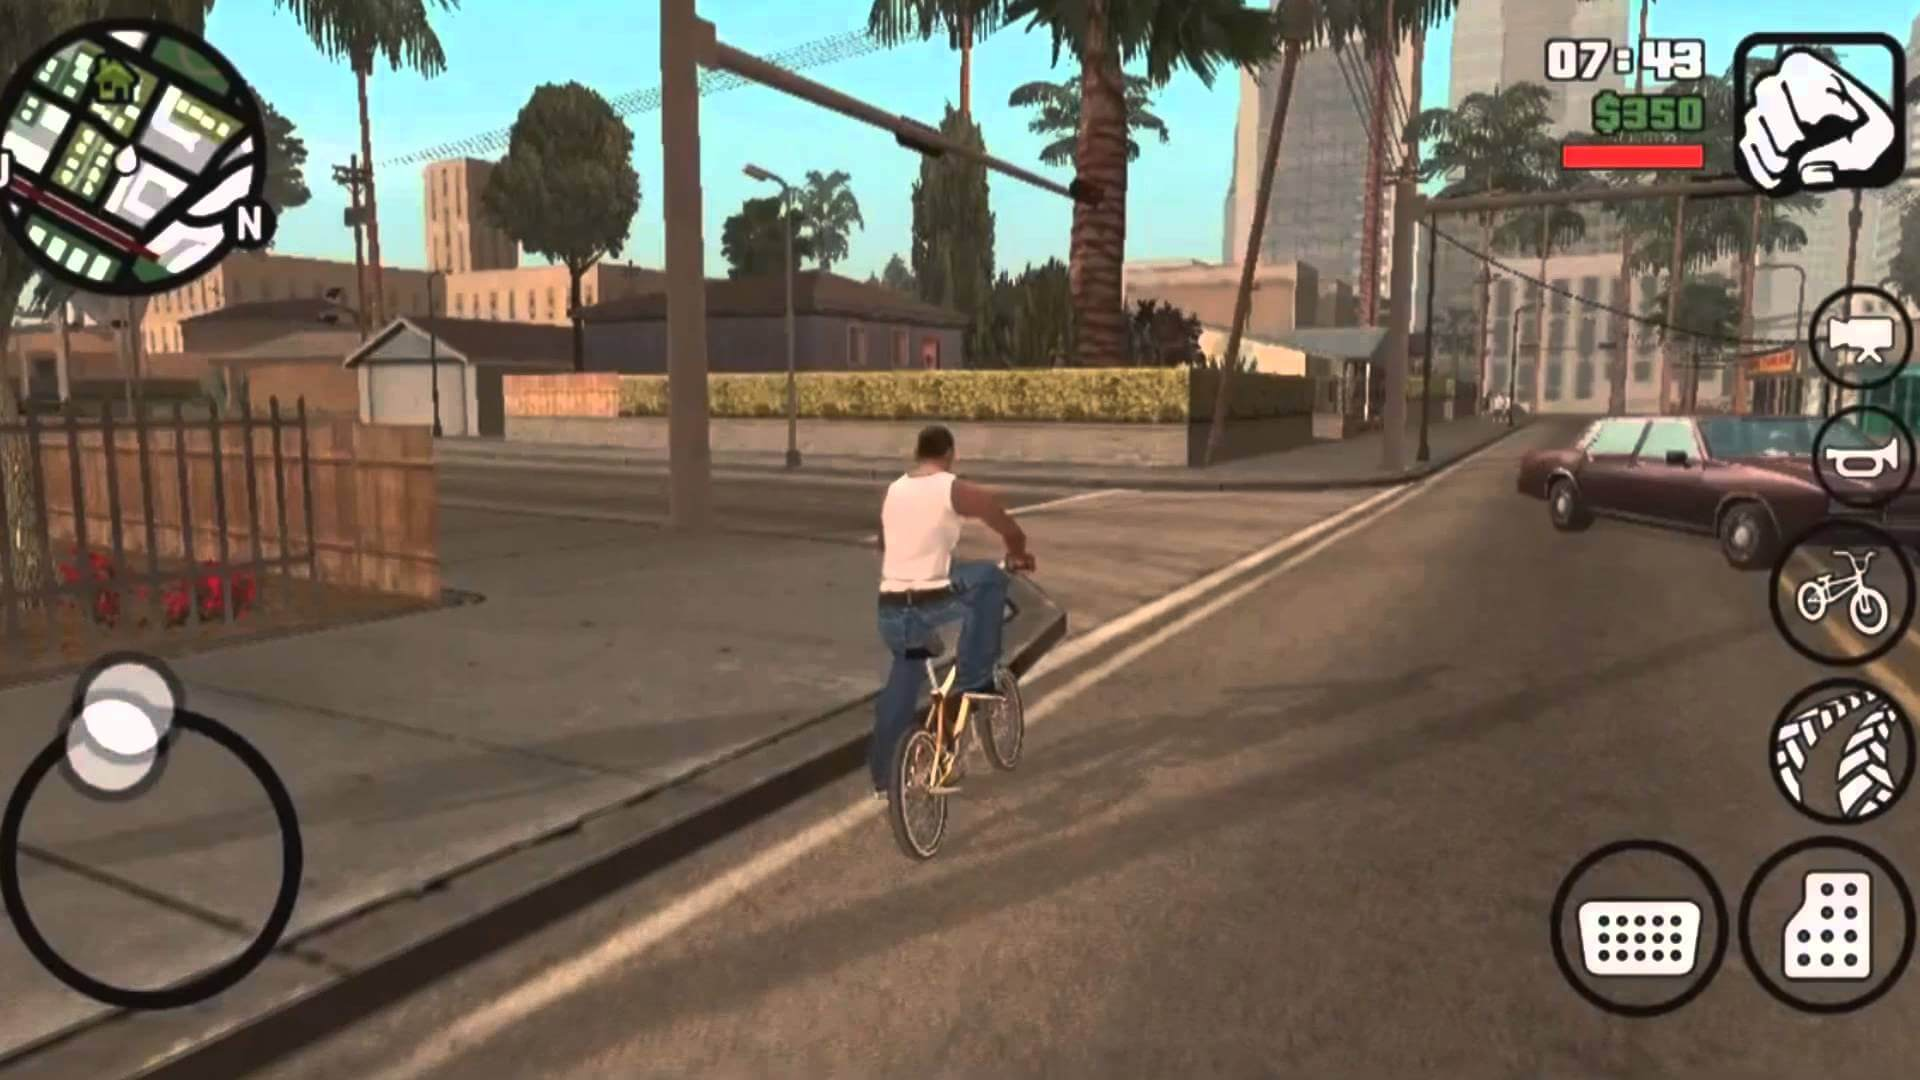 download free 3d bike racing games for windows 7